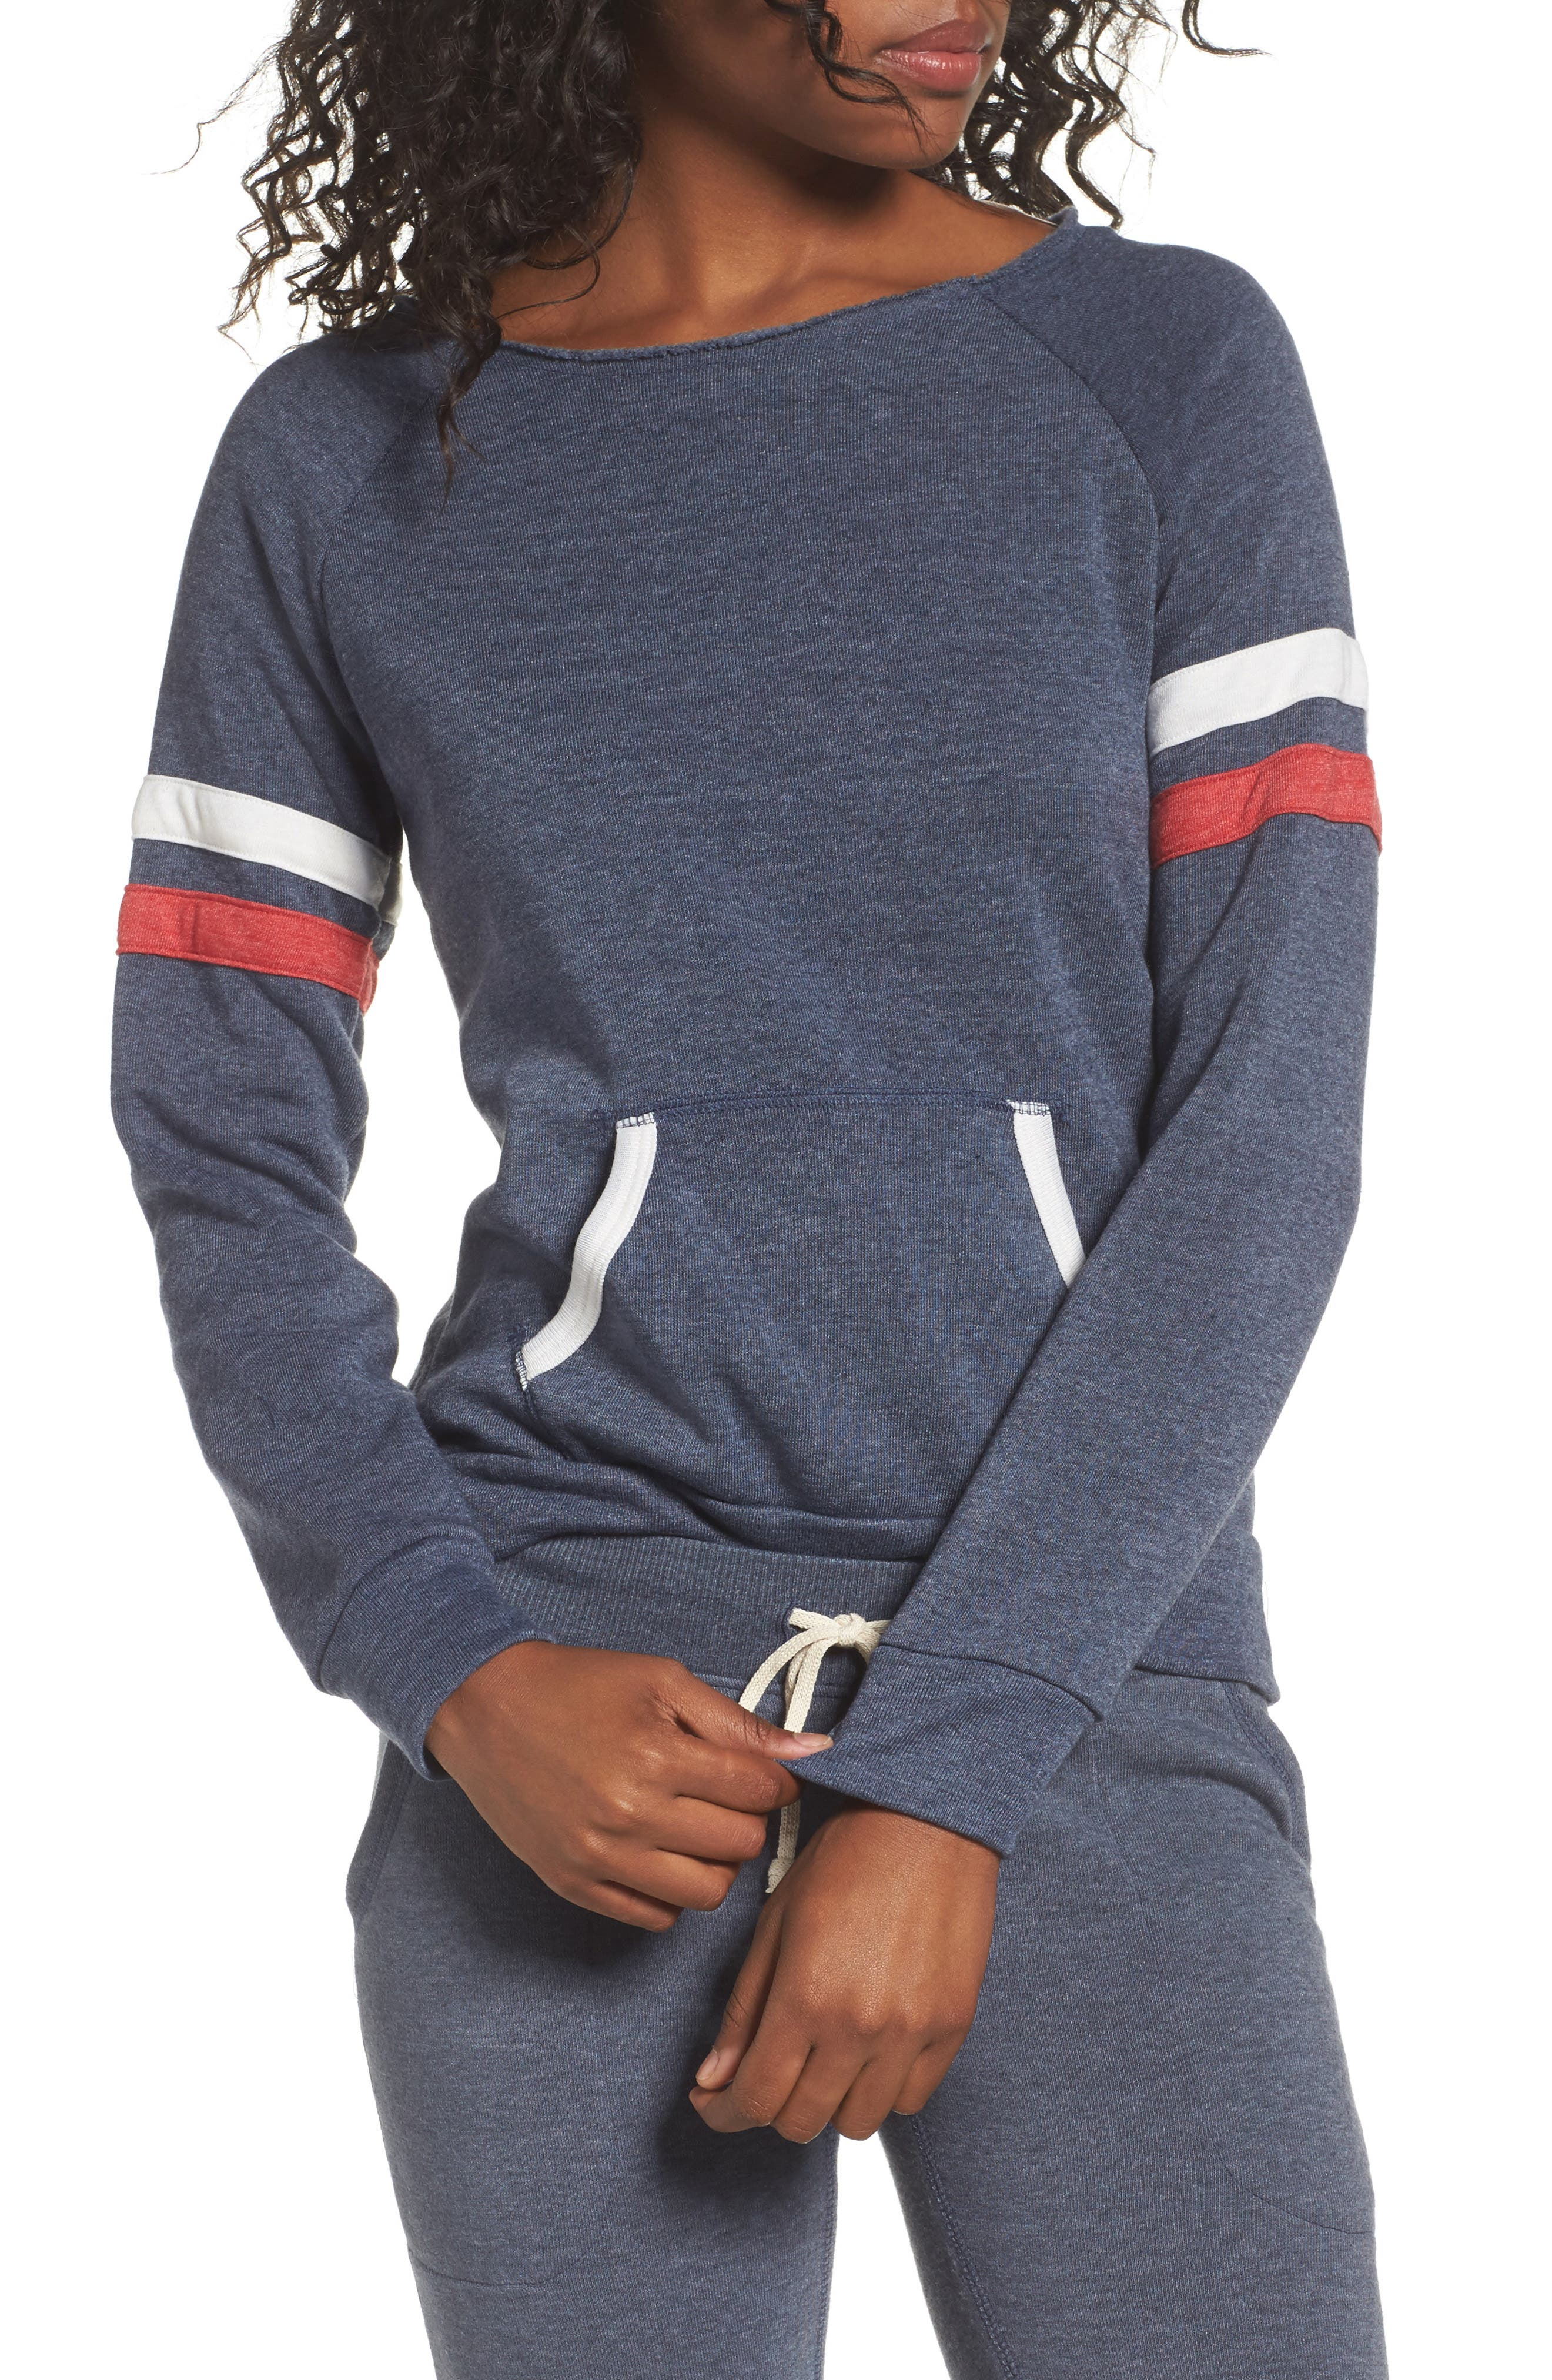 Maniac Sport Pullover,                             Main thumbnail 1, color,                             Eco True Navy